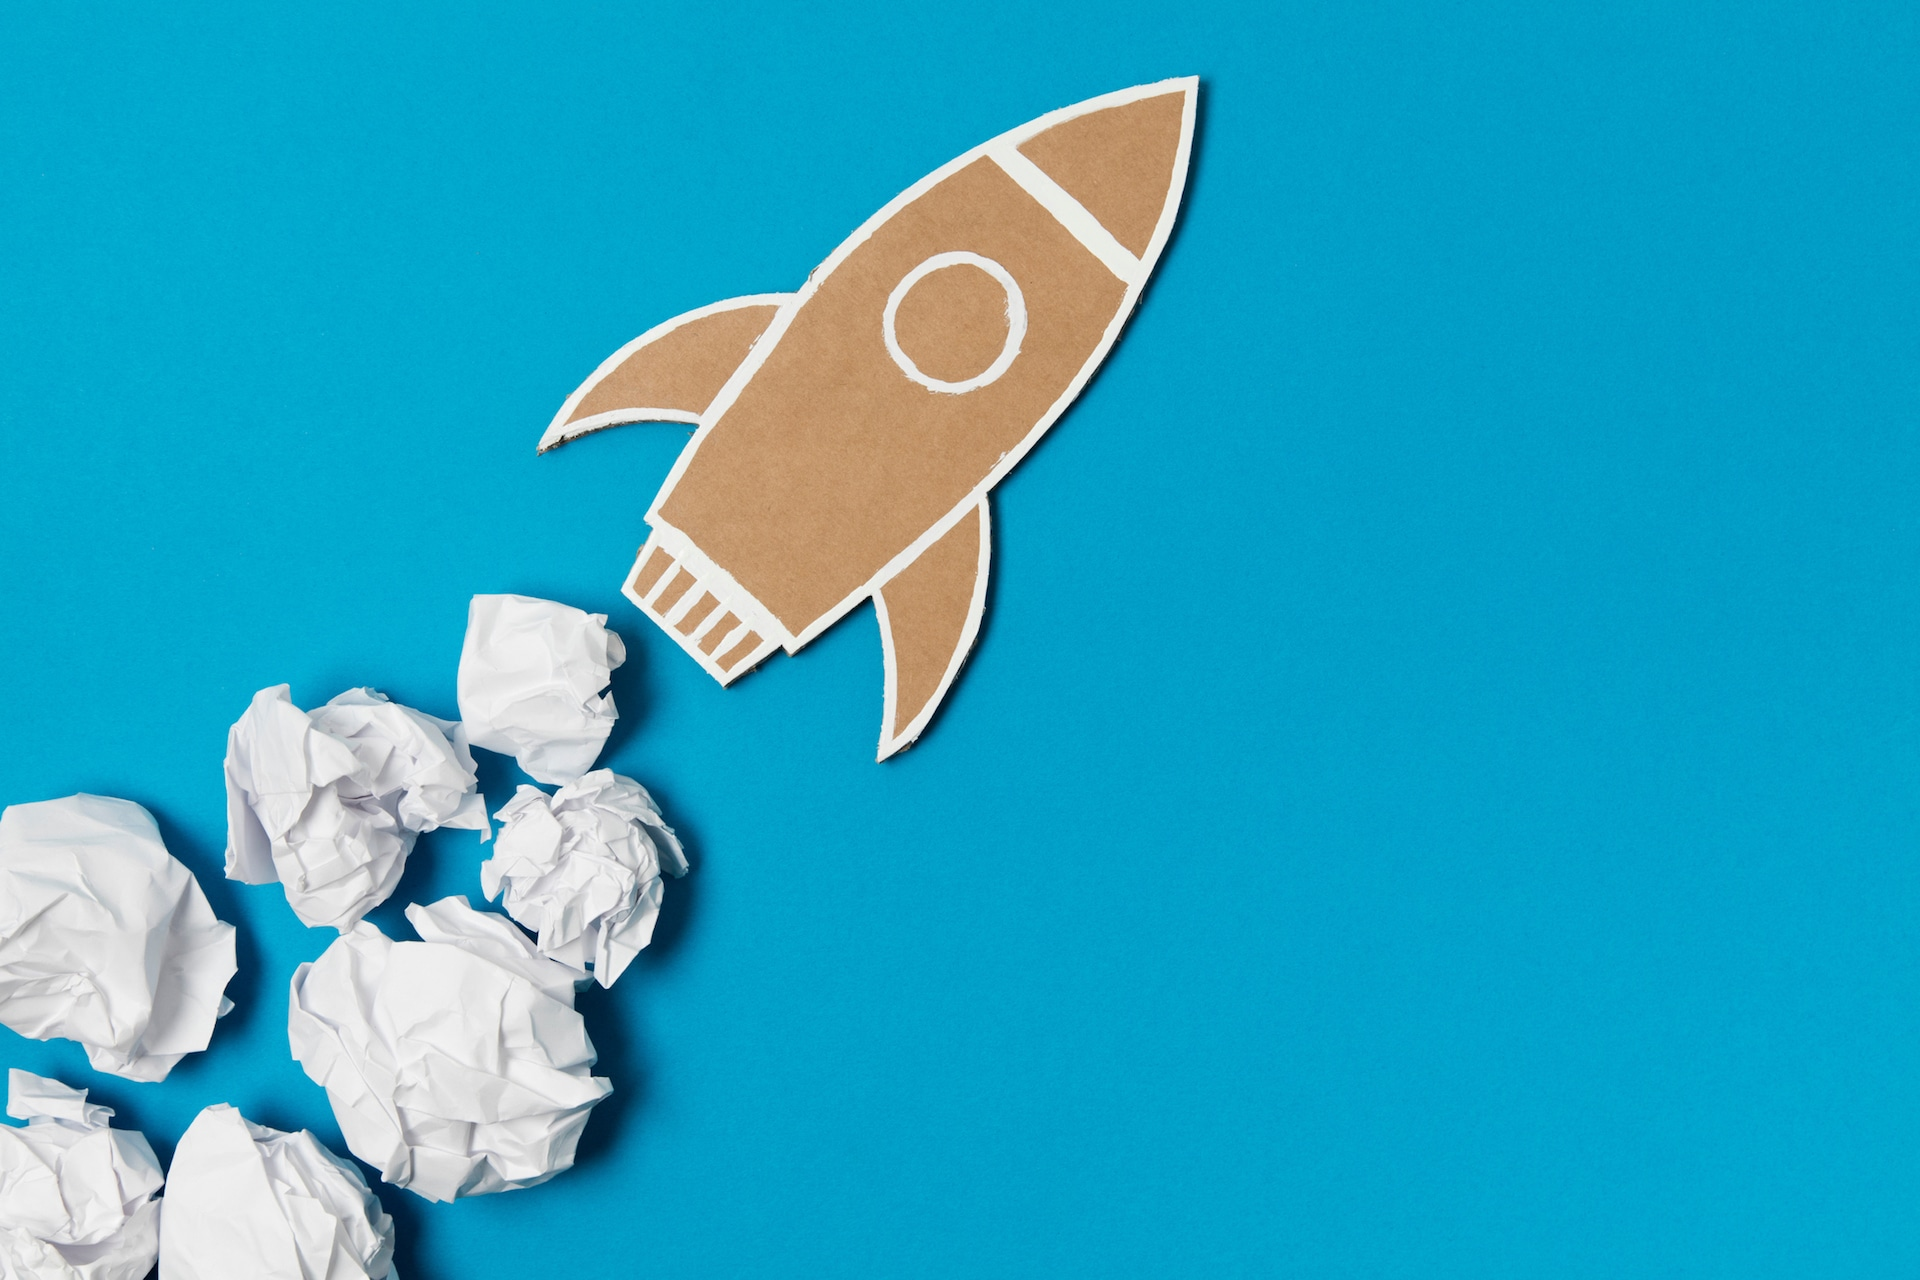 8 Simple Tweaks That Will Skyrocket Your Blog's Traffic, Growth, and Impact